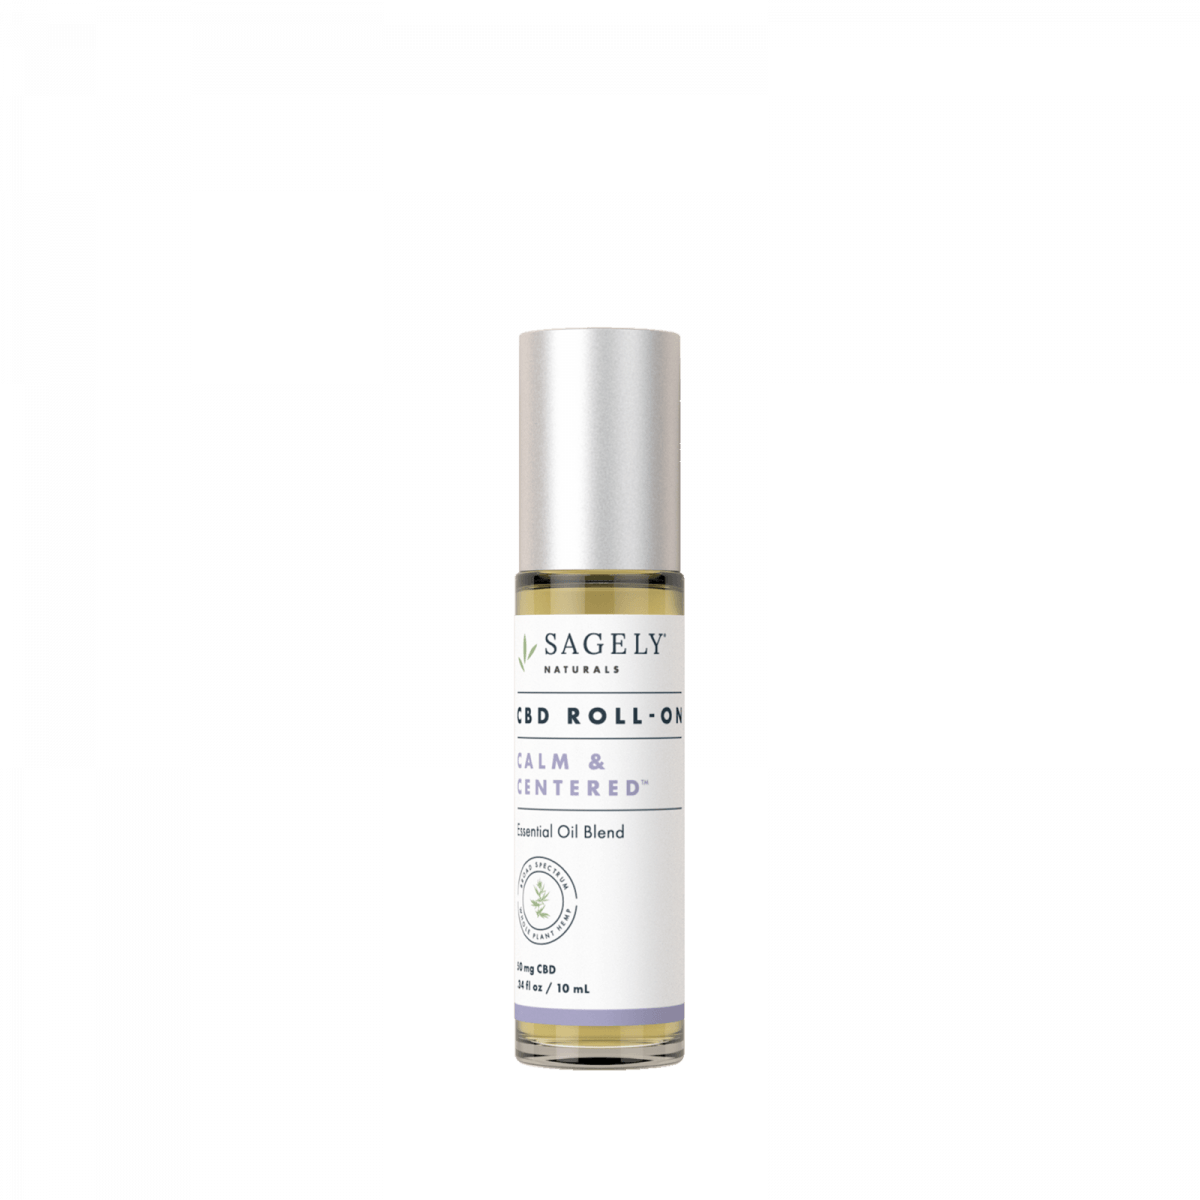 Sagely Naturals Calm & Centered CBD Roll-On